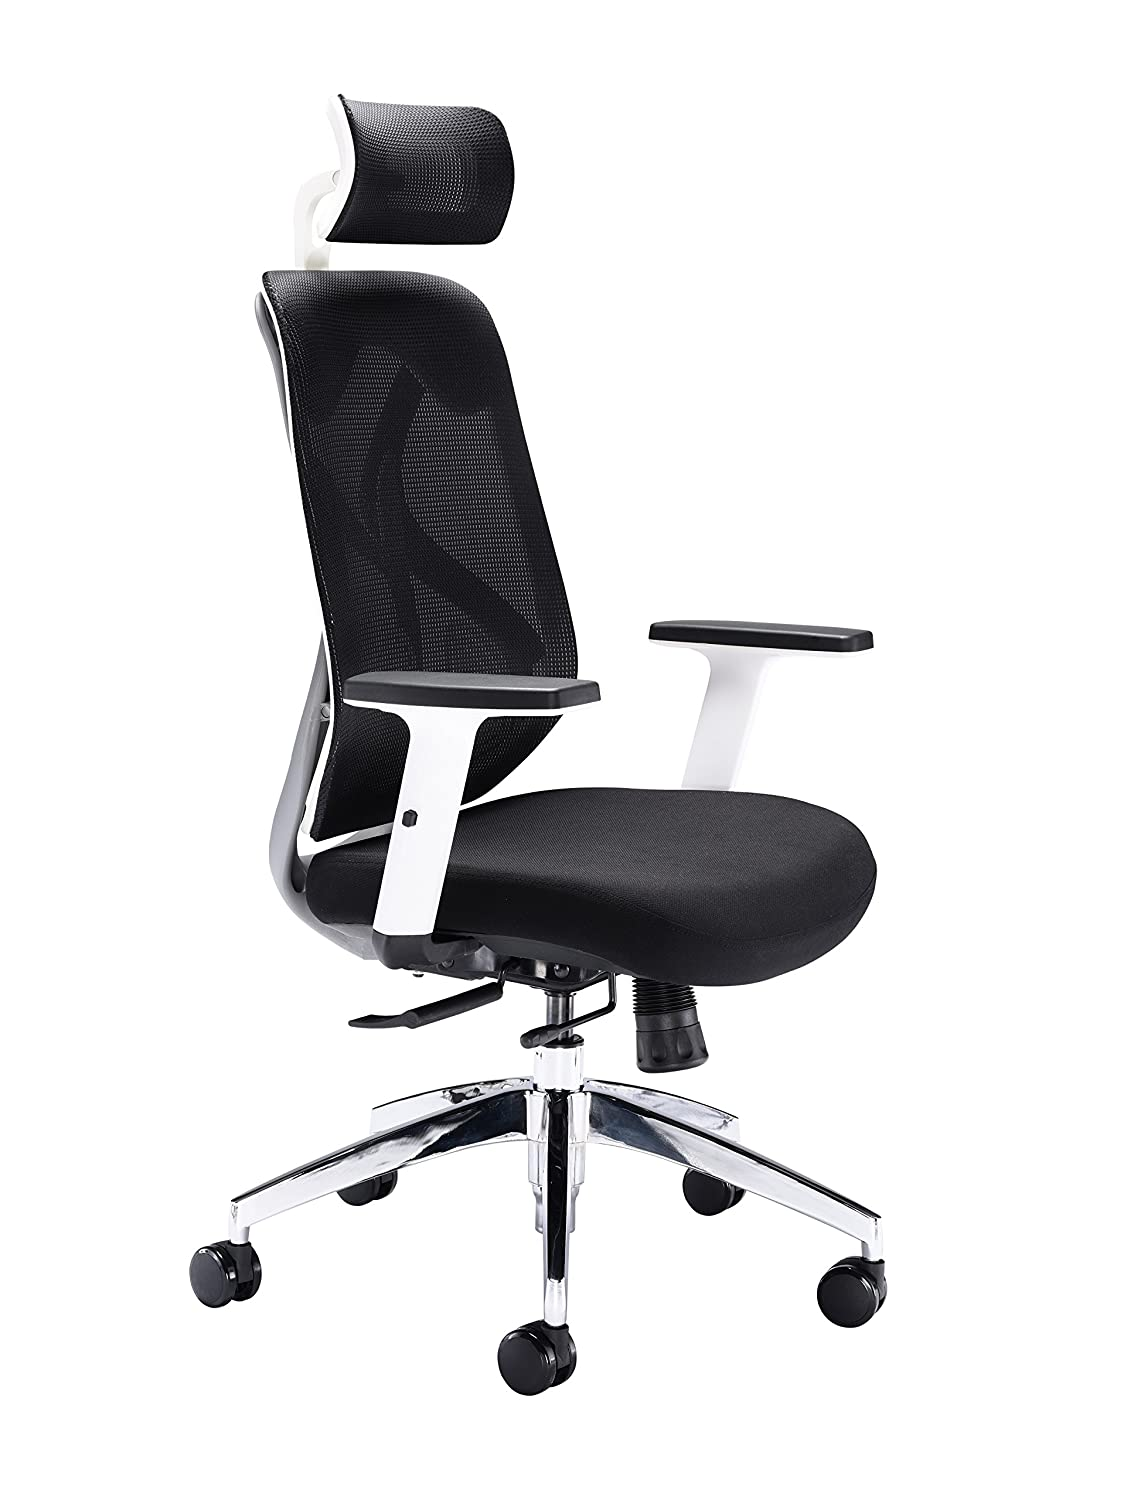 black and white office furniture. Office Hippo Storm Mesh Chair, Fabric, White Frame, Black: Amazon.co.uk: Kitchen \u0026 Home Black And Furniture